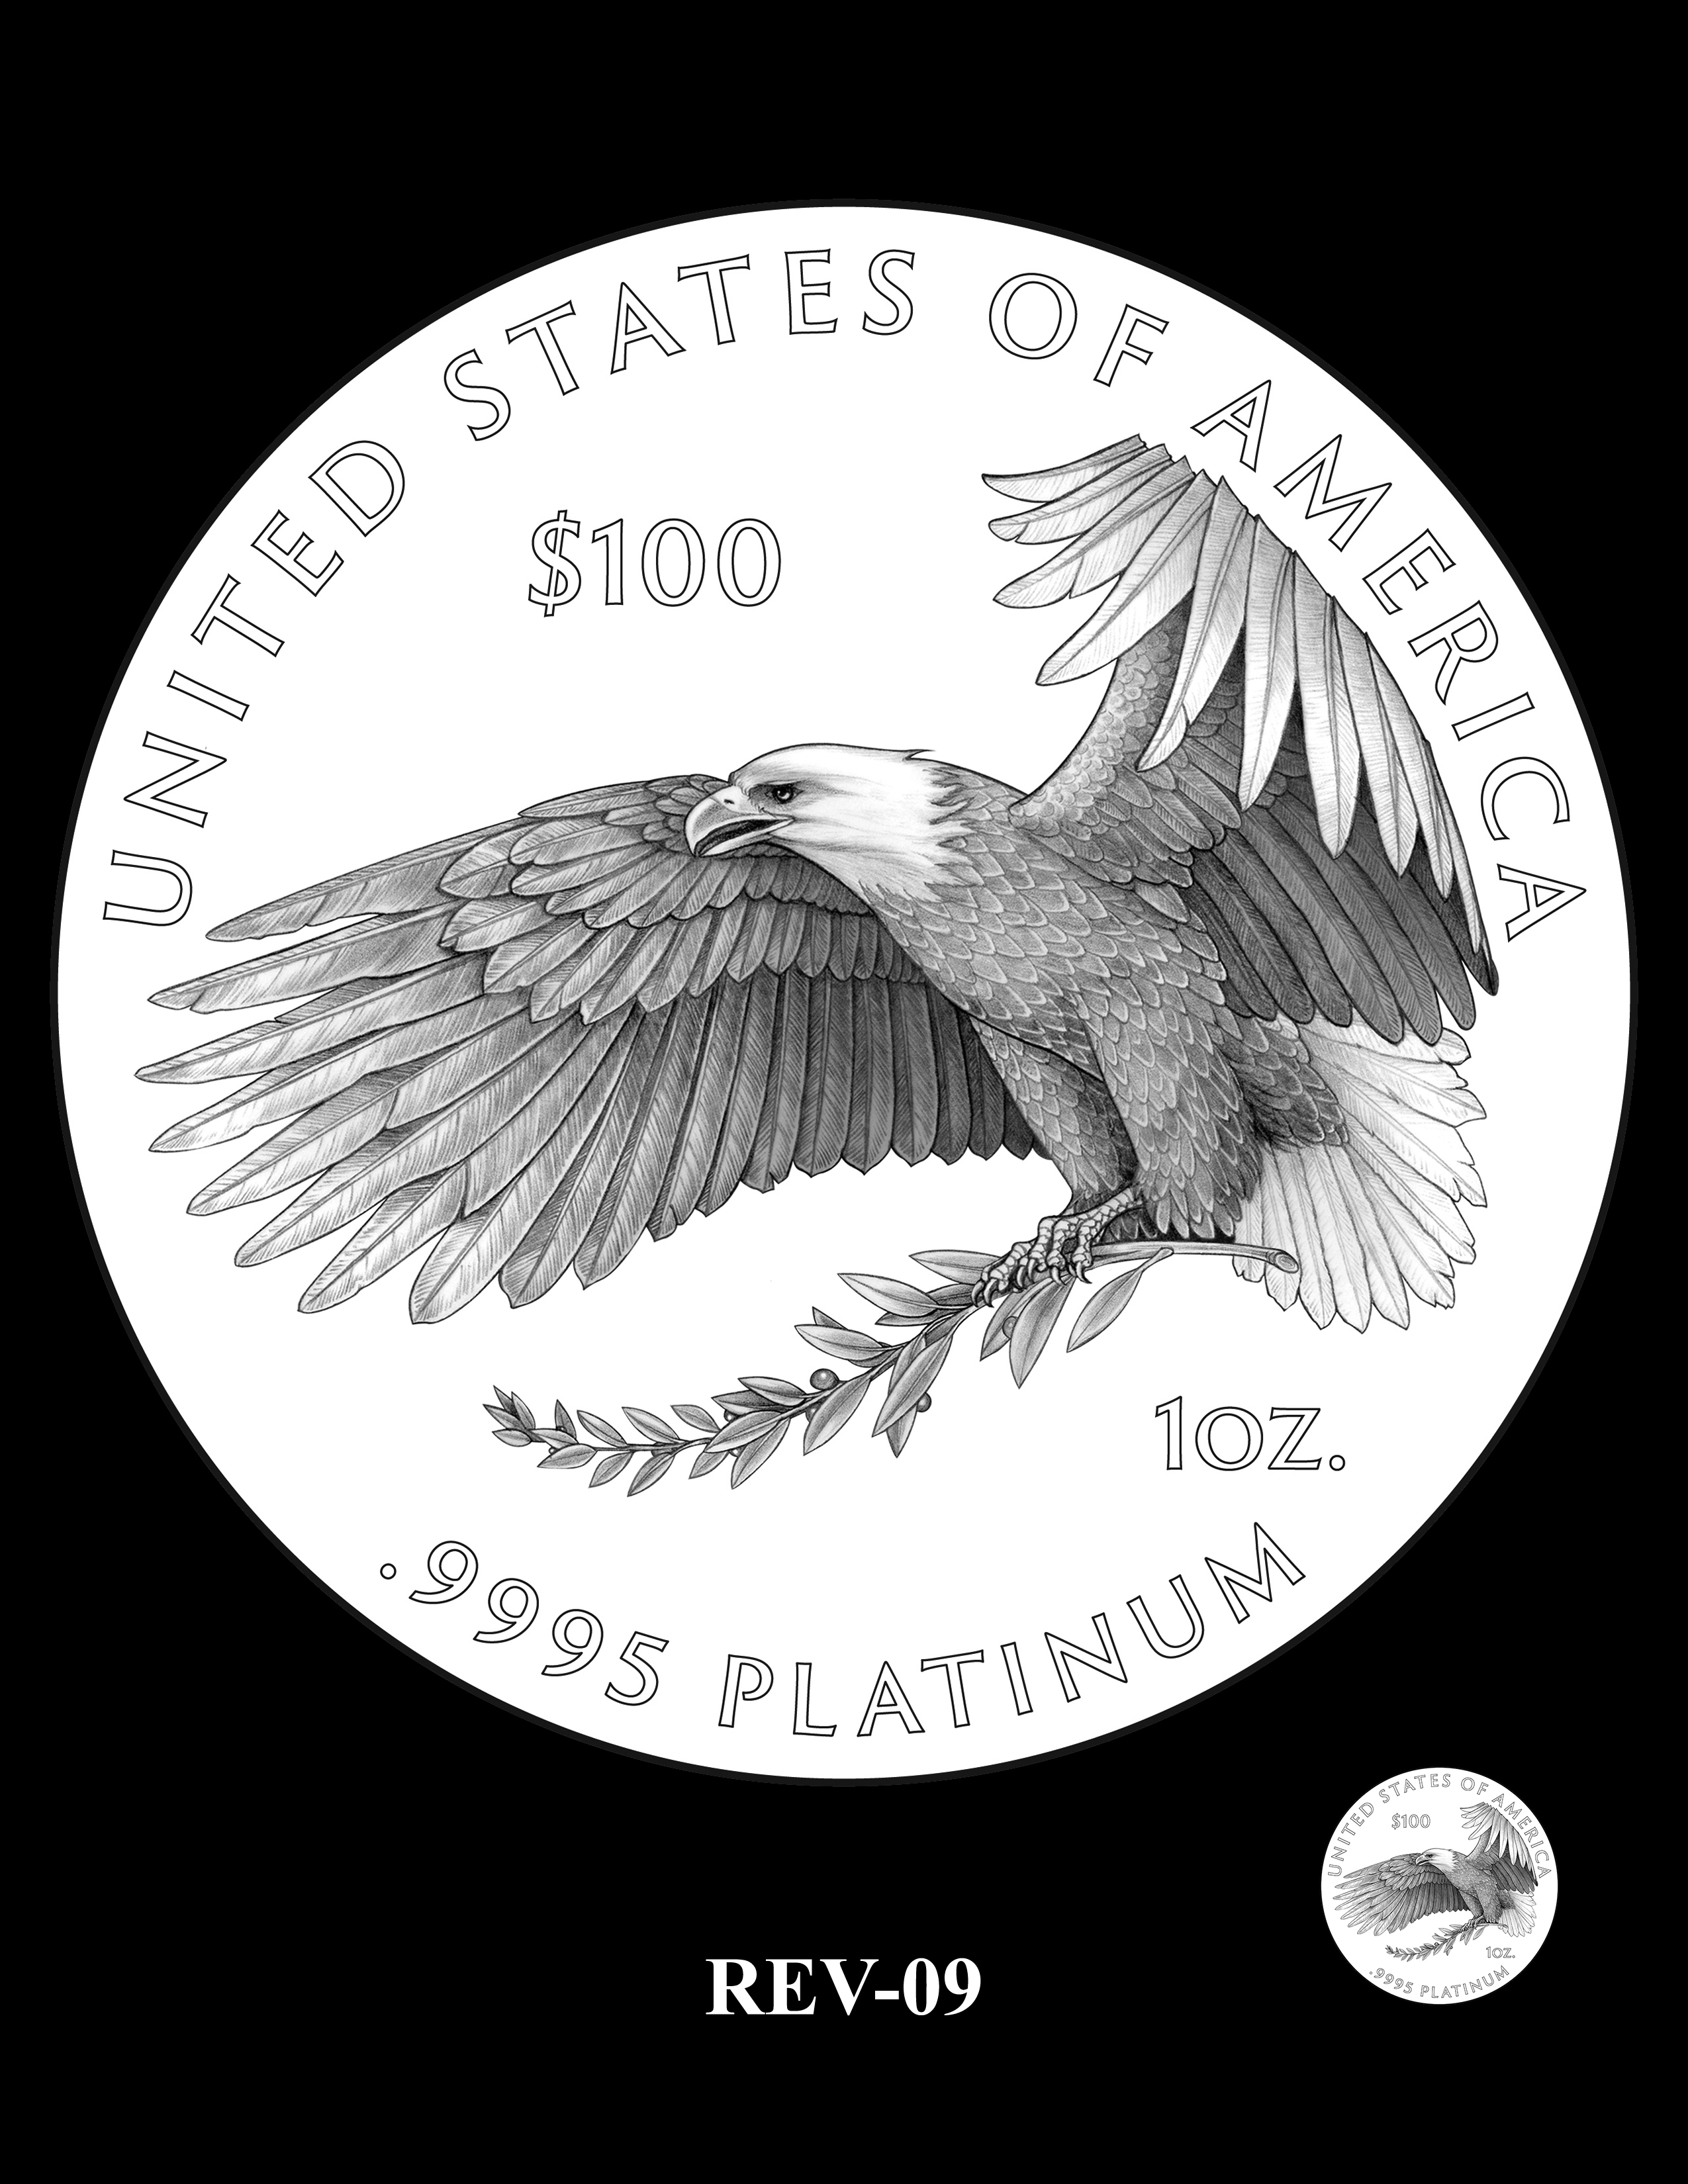 SET09A-REV-09 - 2018 2019 and 2020 American Eagle Platinum Proof Program